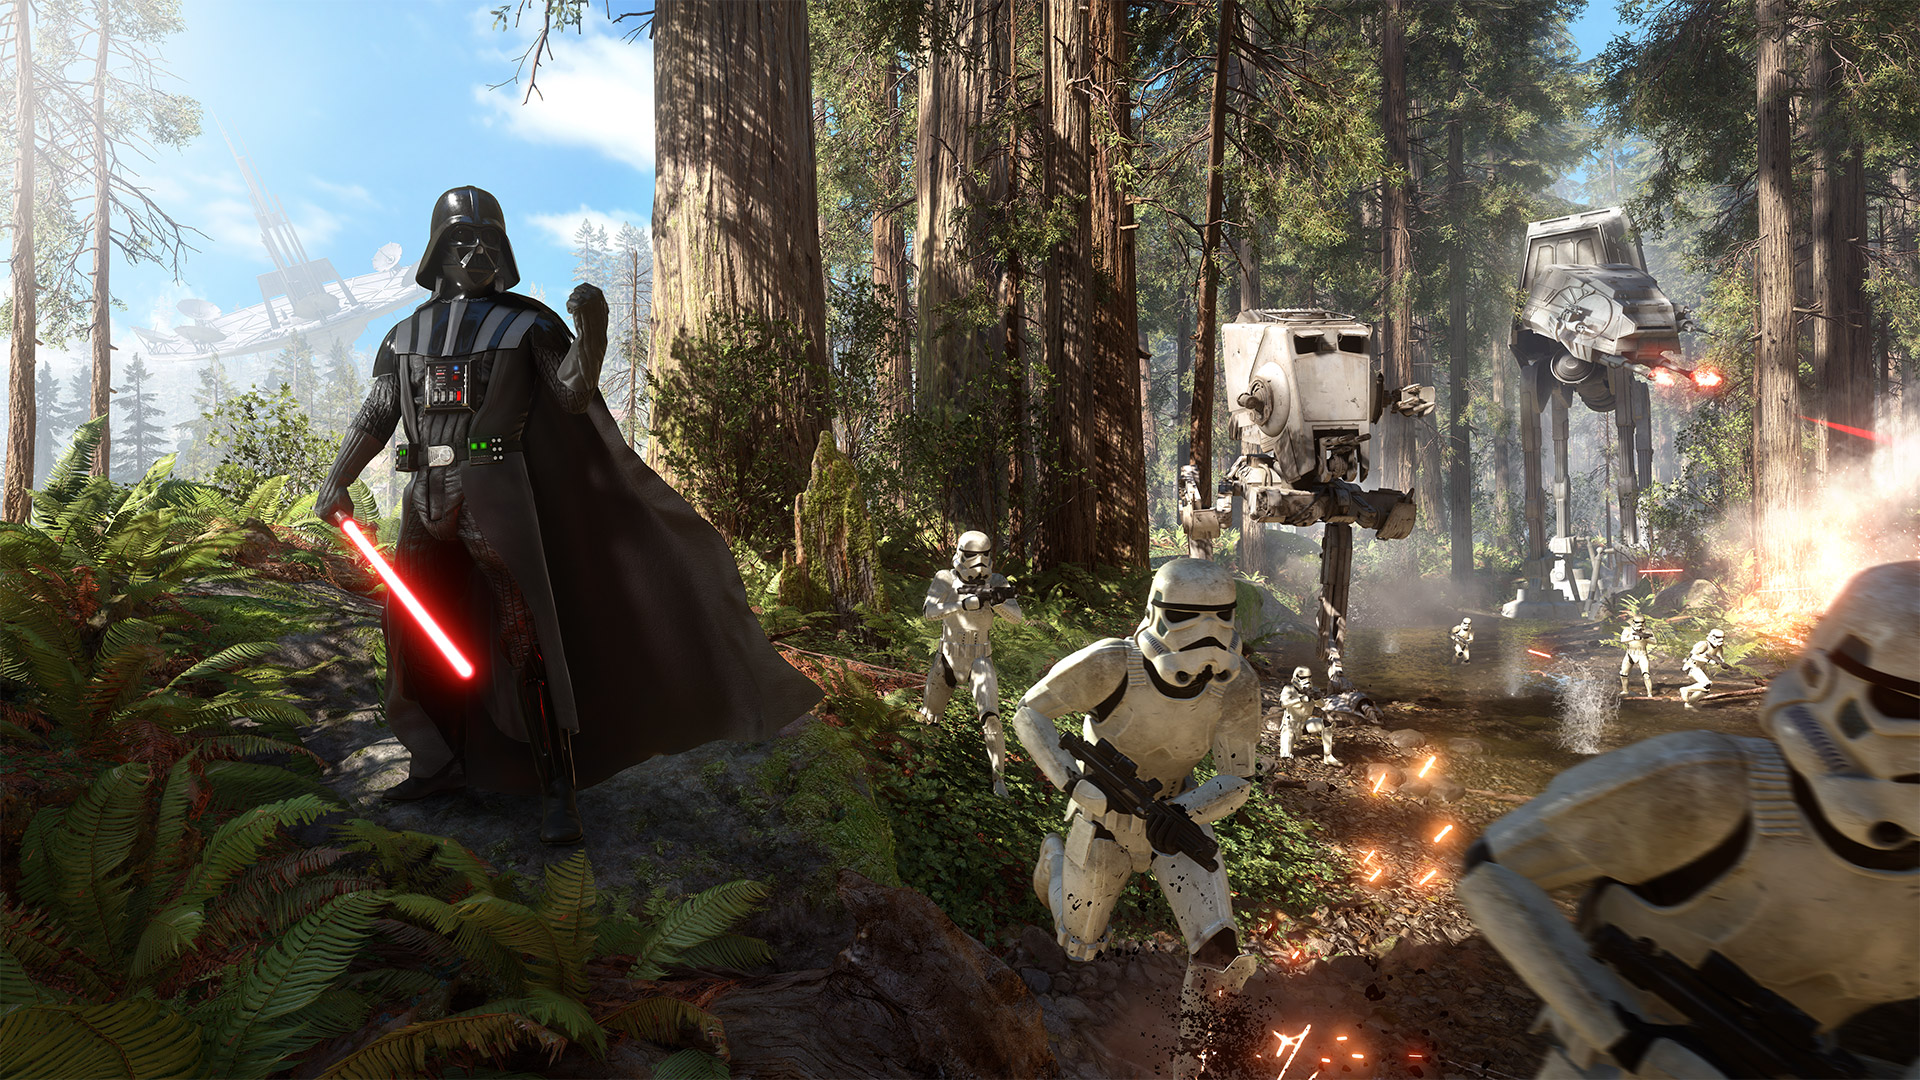 'Star Wars Battlefront 2' Will Have a Single-Player Campaign, DICE Confirms